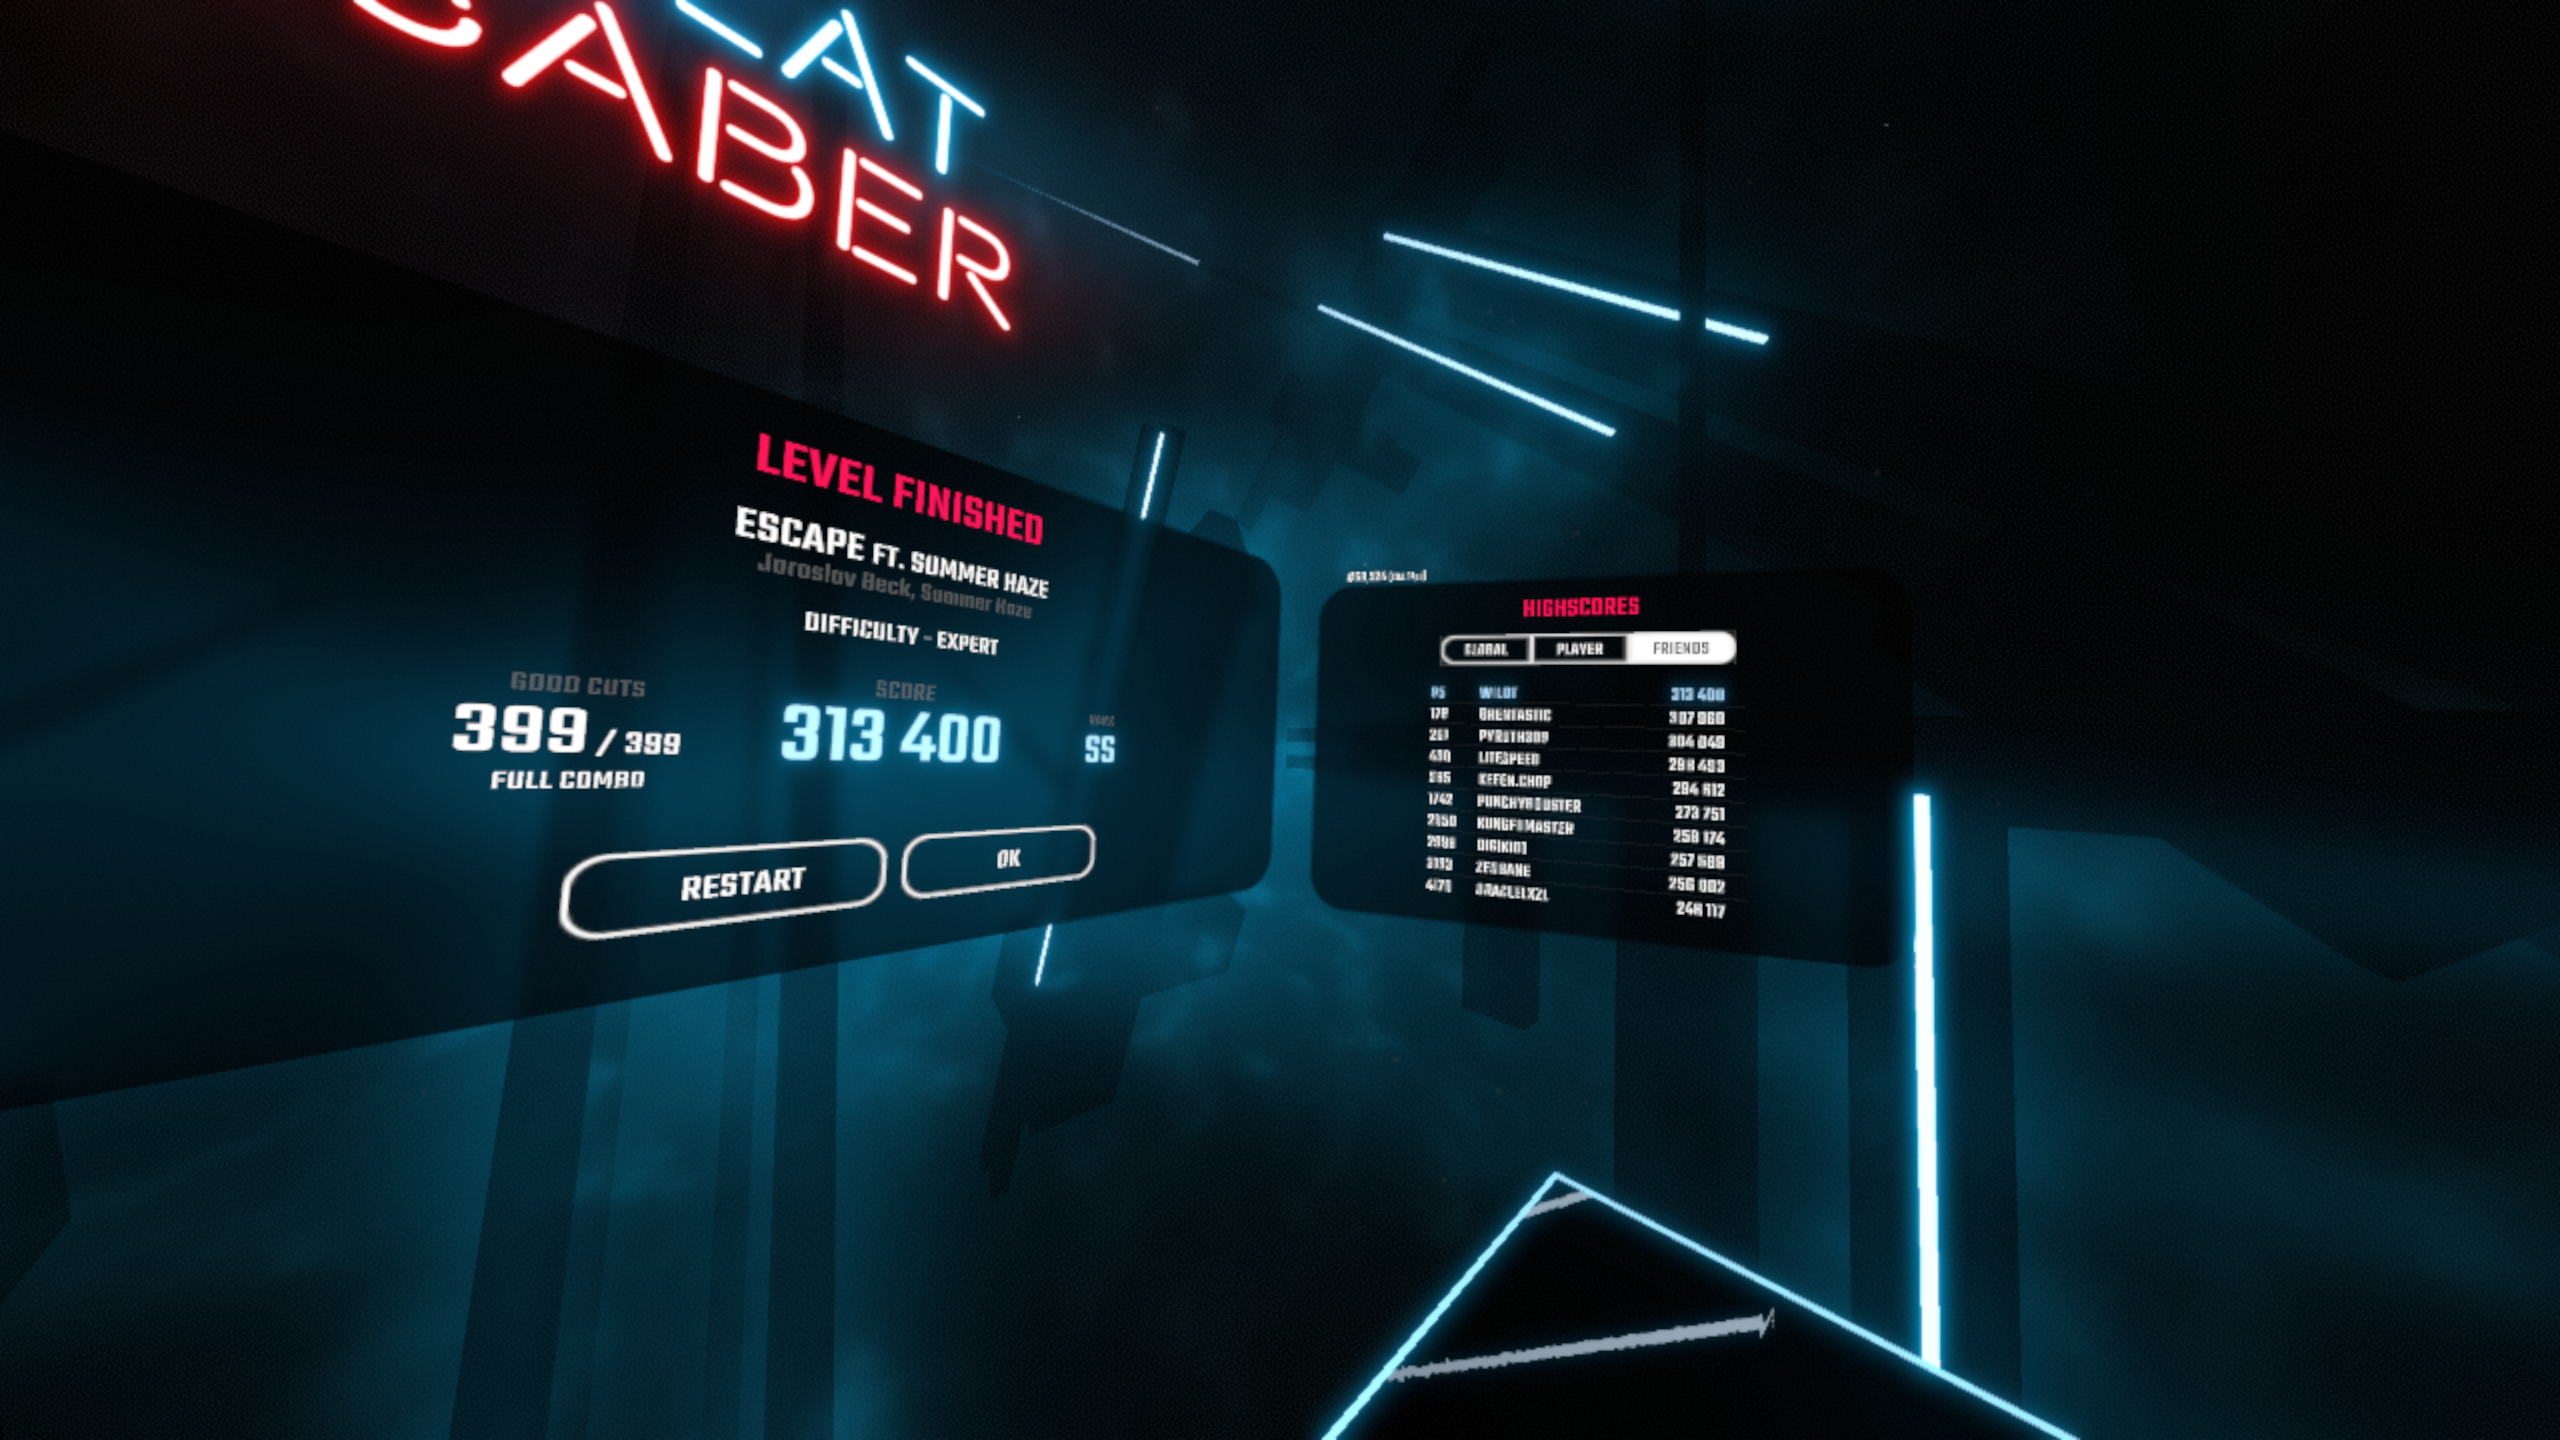 Beat Saber - Community Rankings! - Page 5 — Oculus